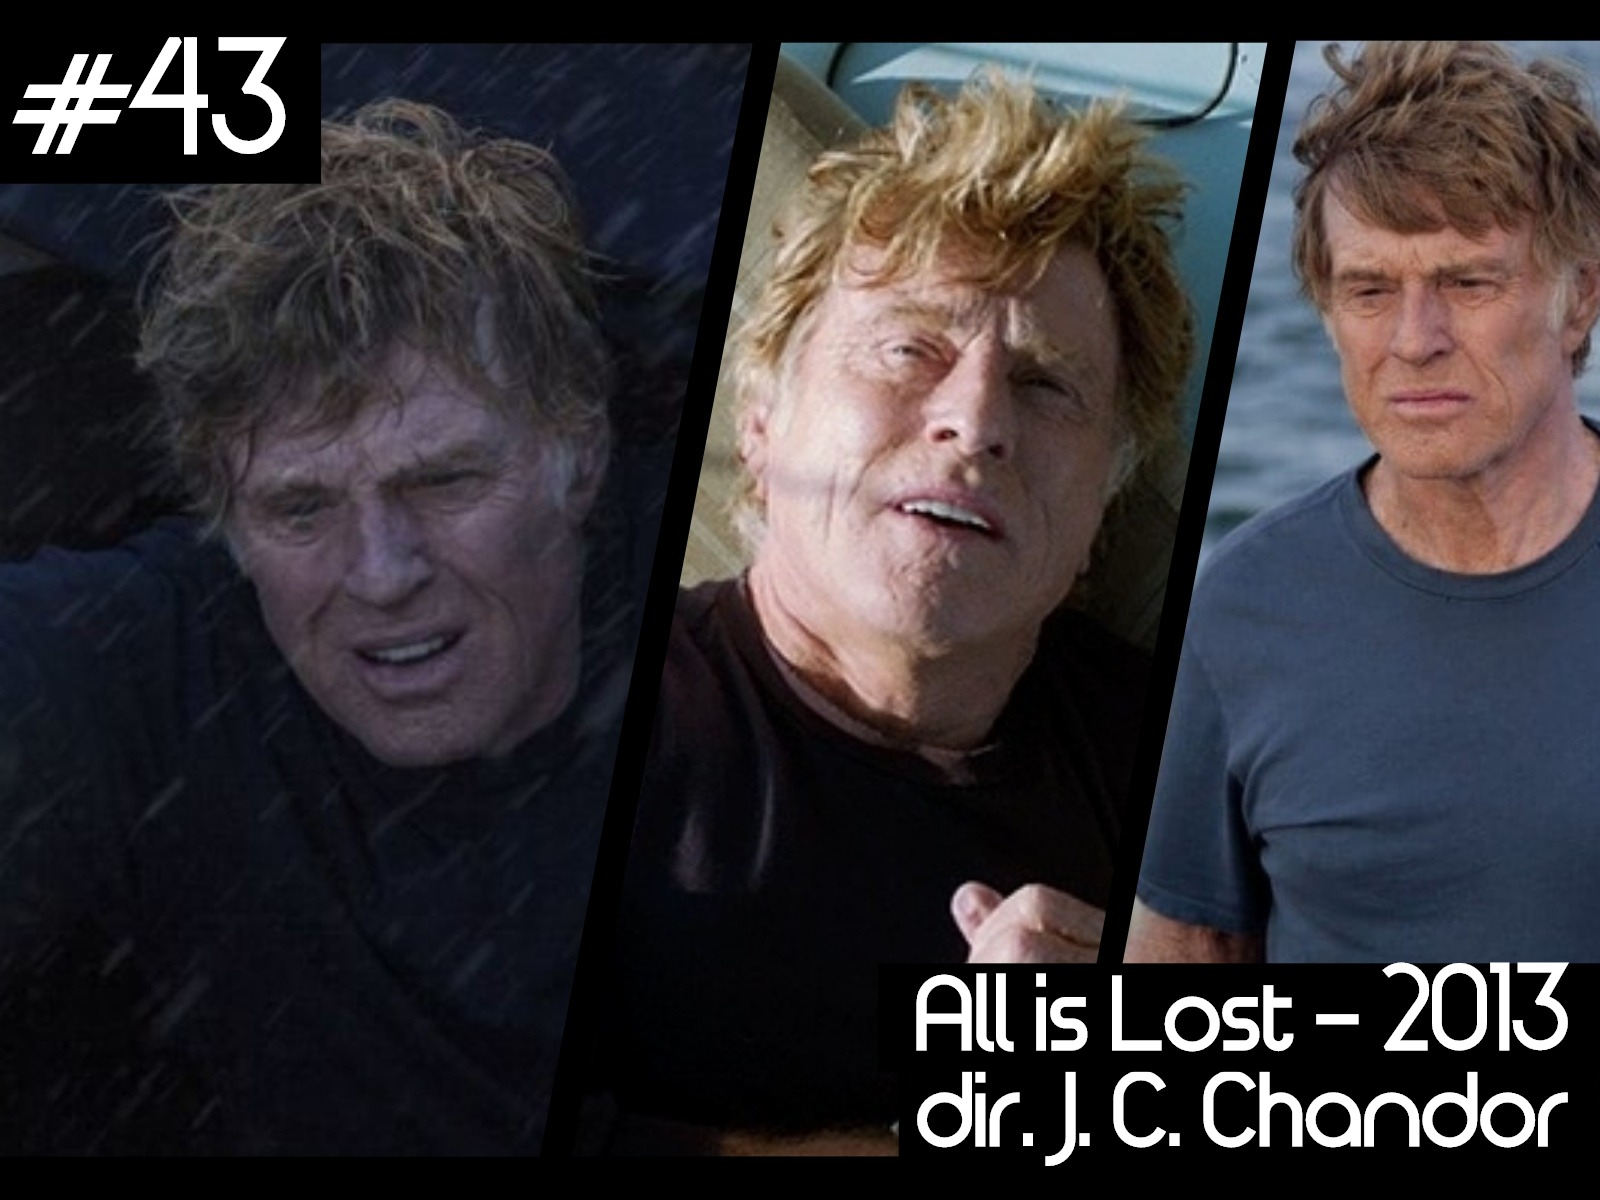 43 - all is lost.jpg